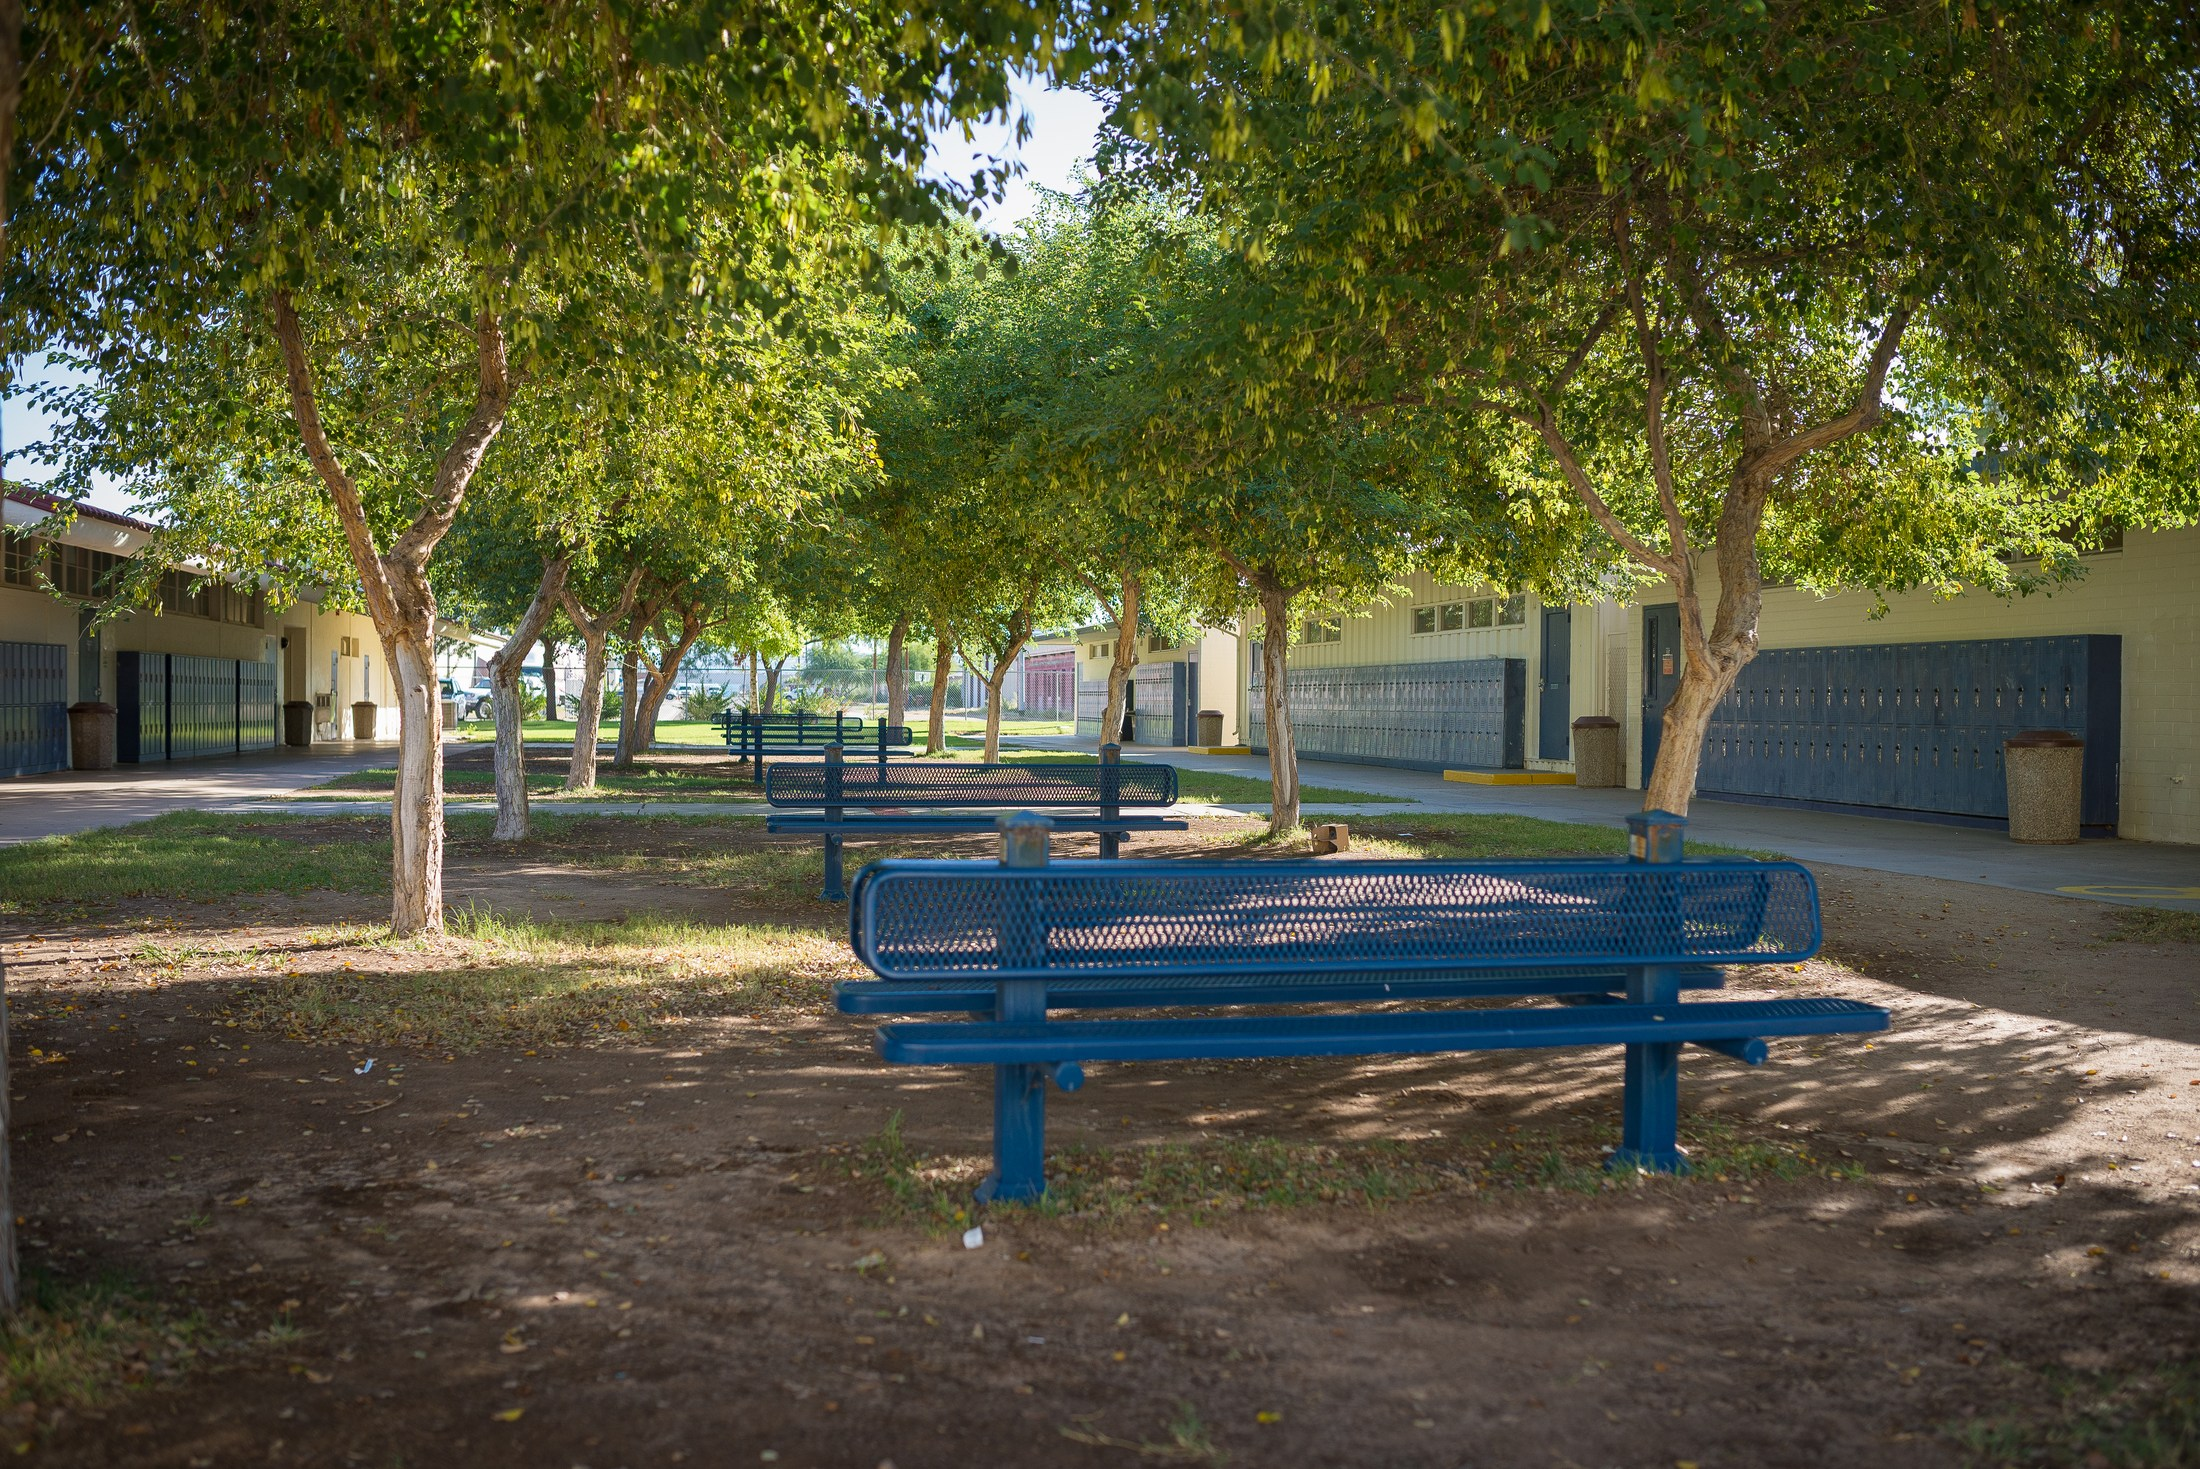 High school grounds